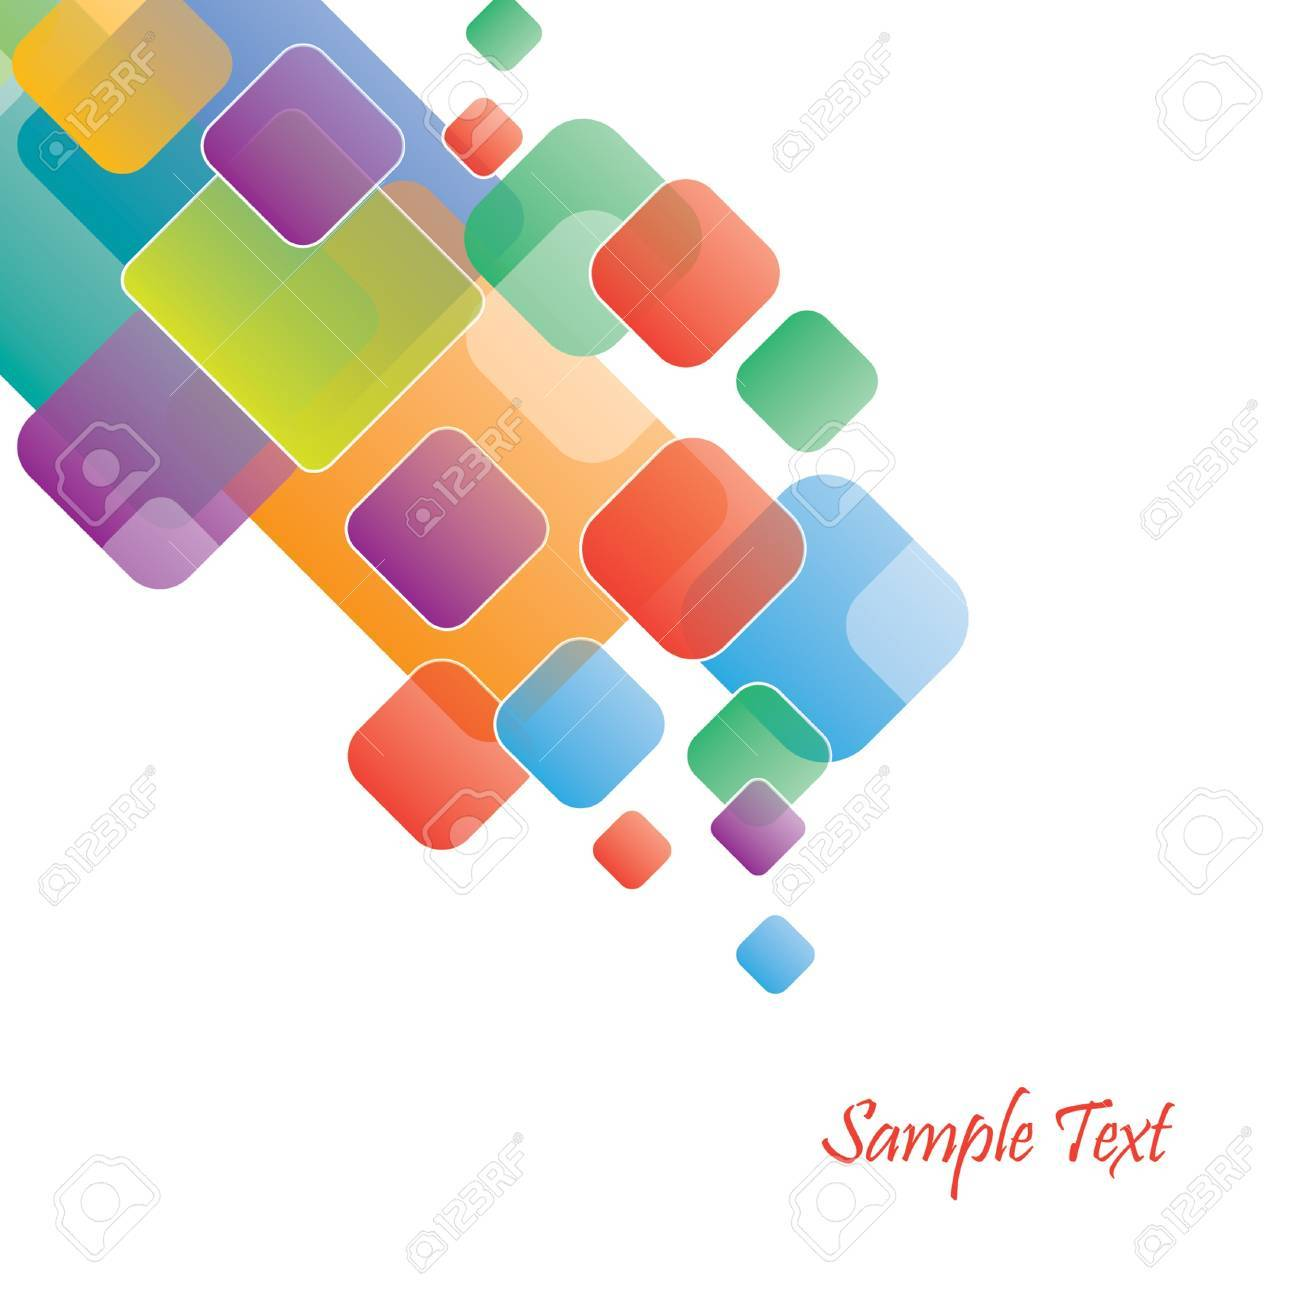 Stylish Business Template Stock Vector - 12831278